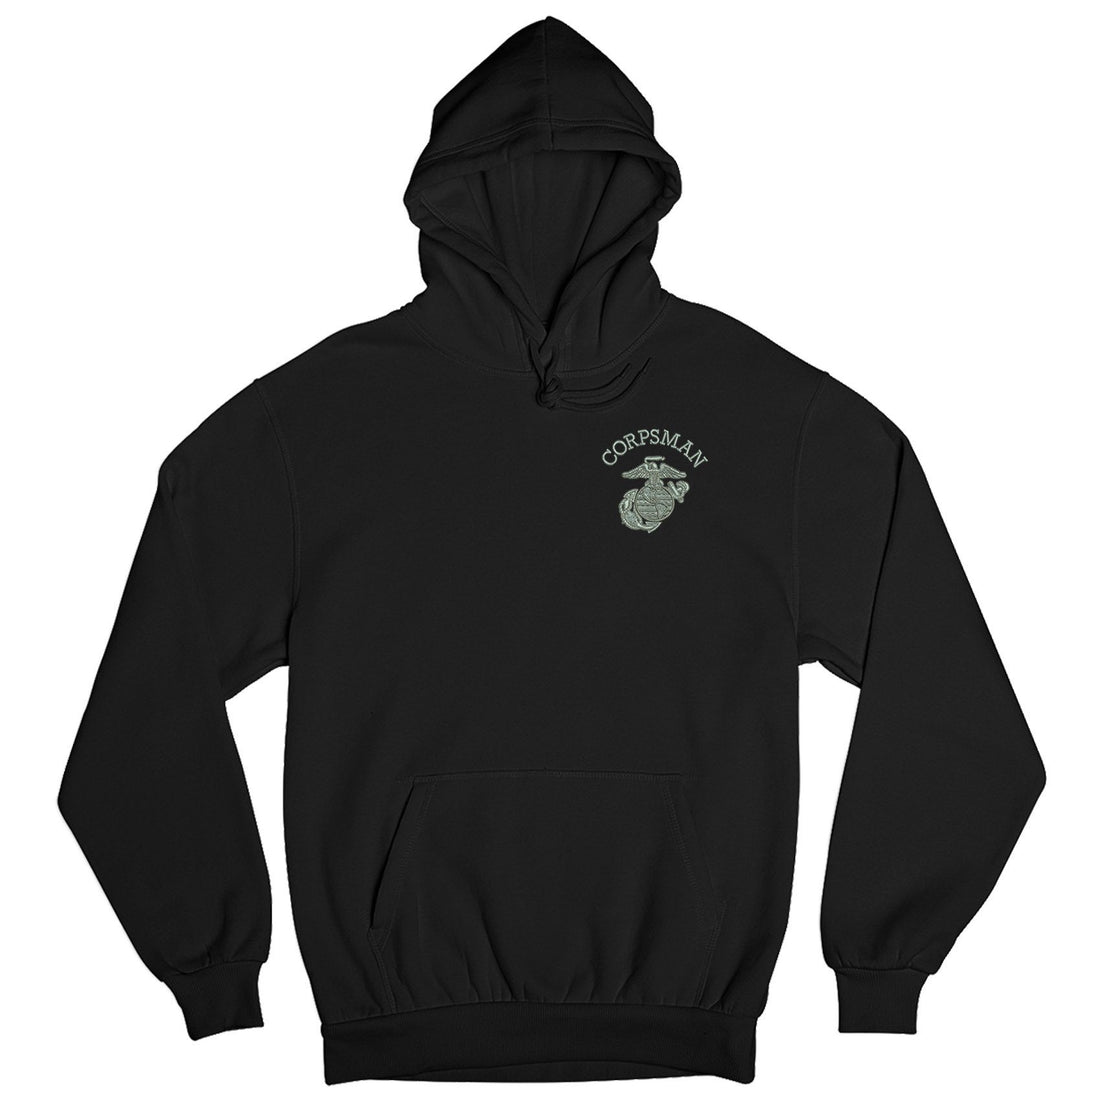 Corpsman EGA Embroidered Hoodie - Marine Corps Direct